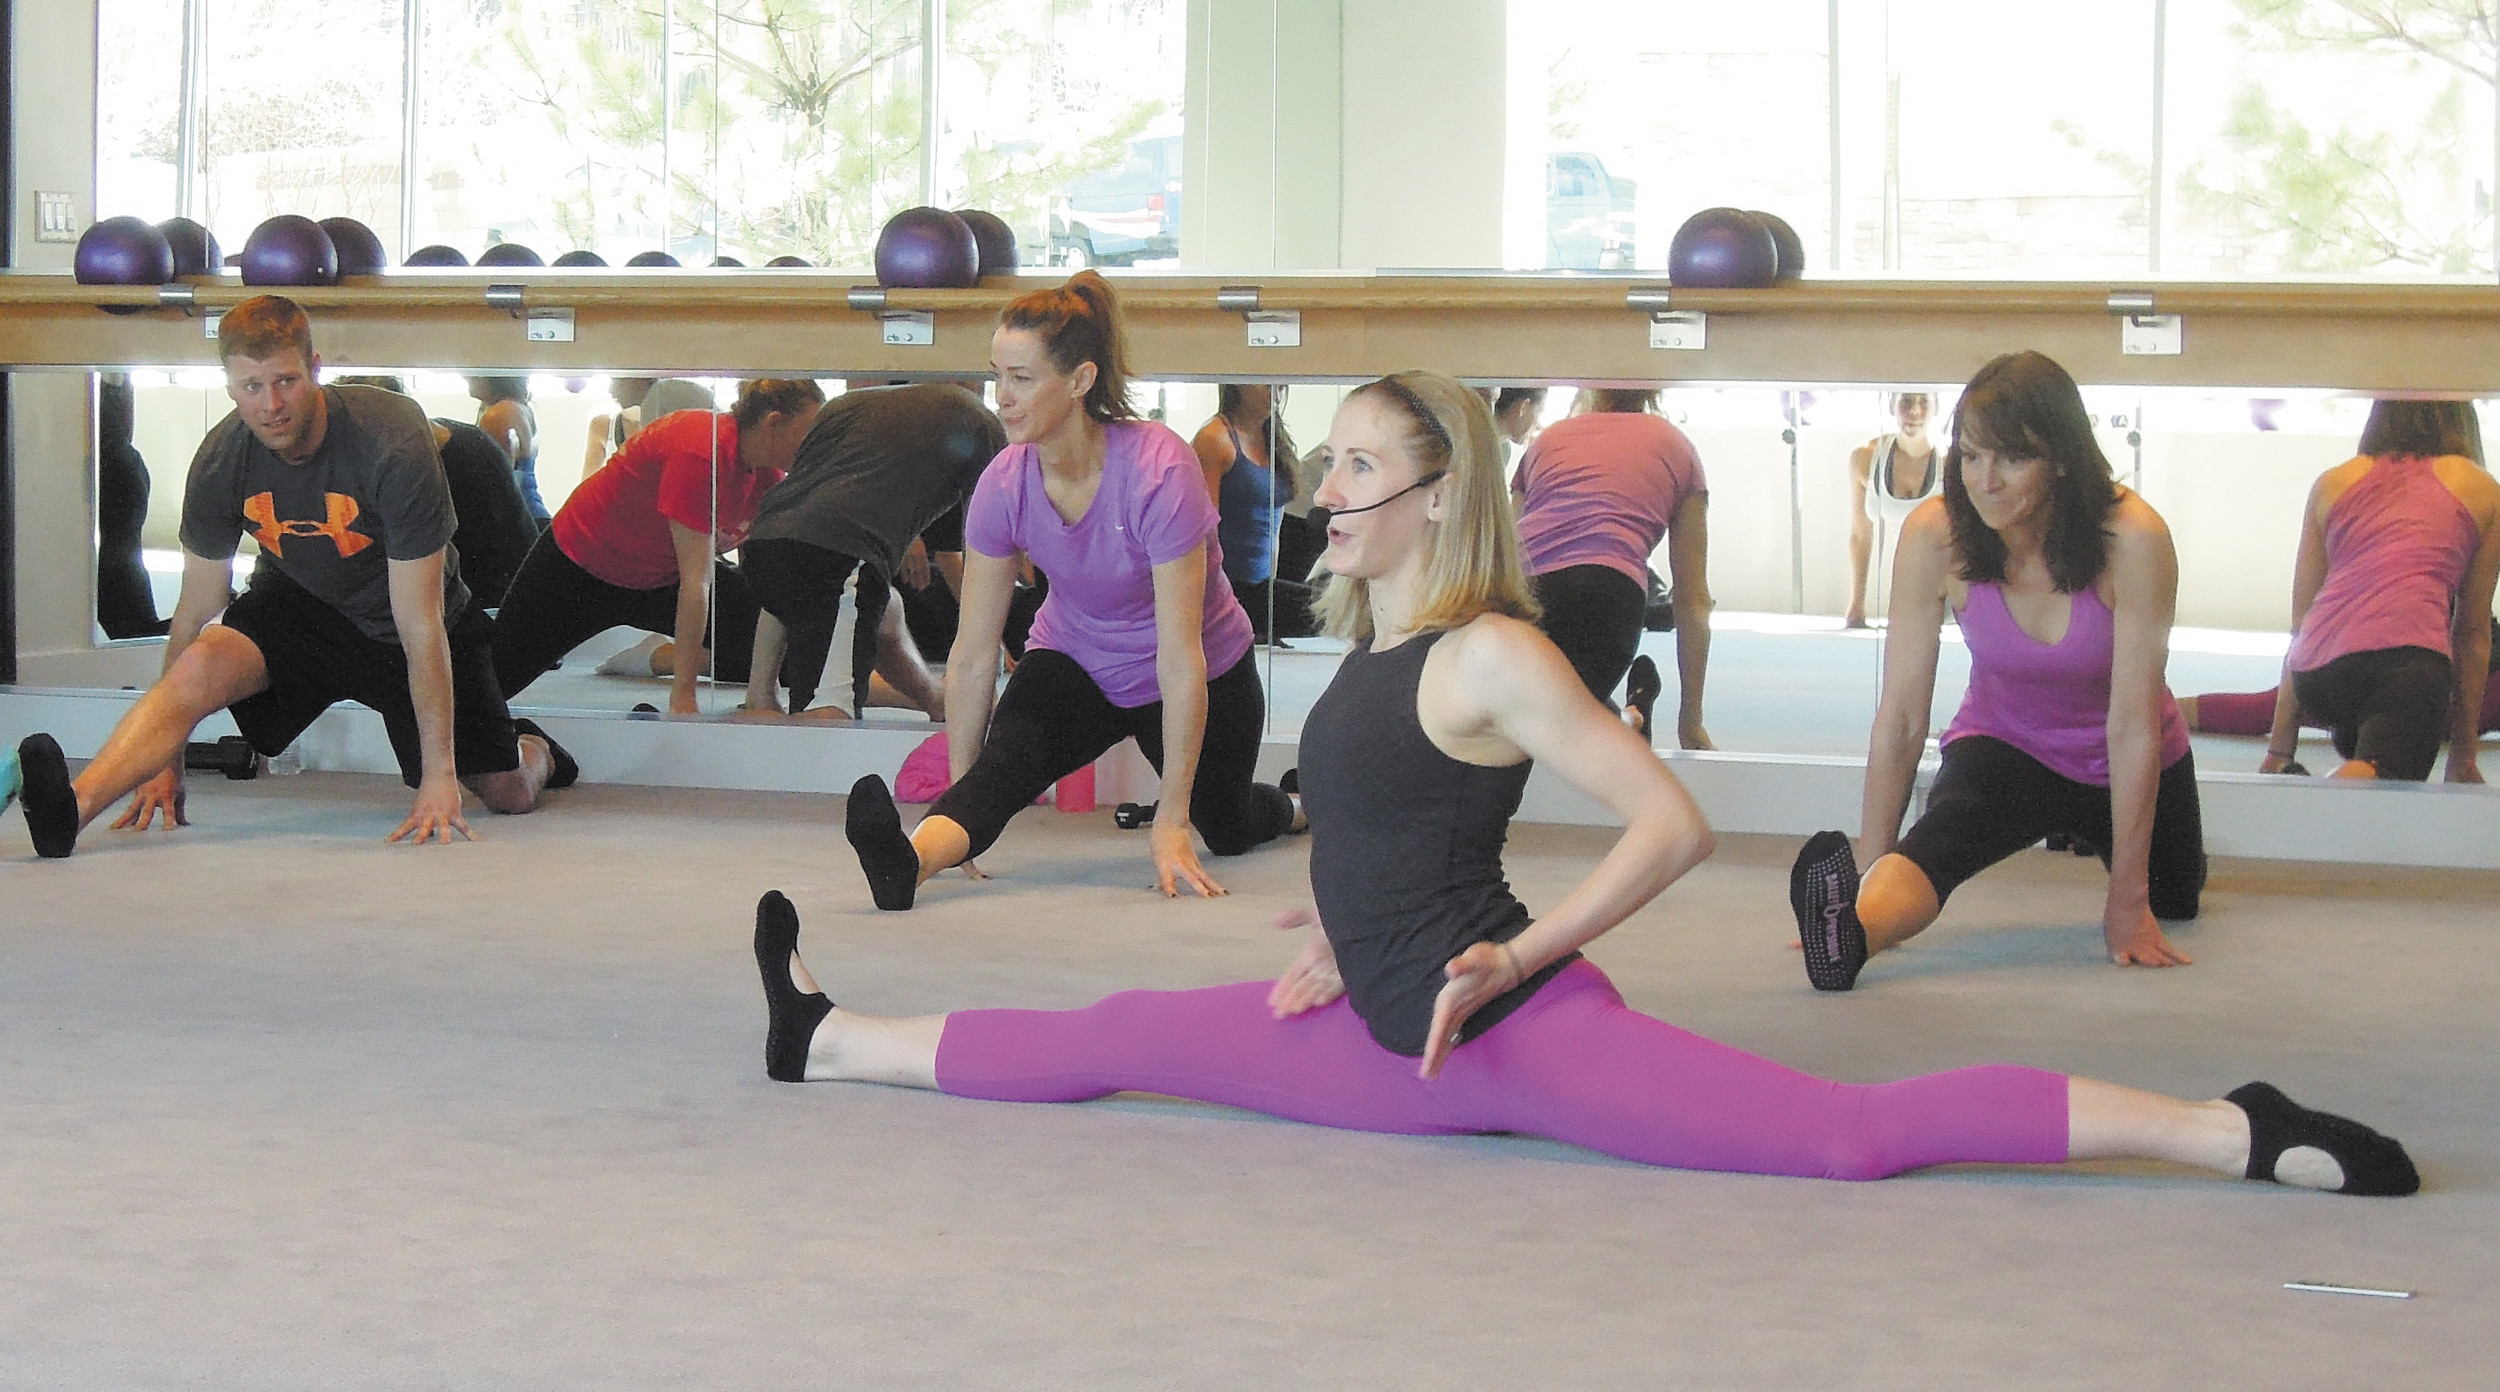 Ballet Physique founder Kristen Zurek leads a class at the new Lone Tree studio on March 8.